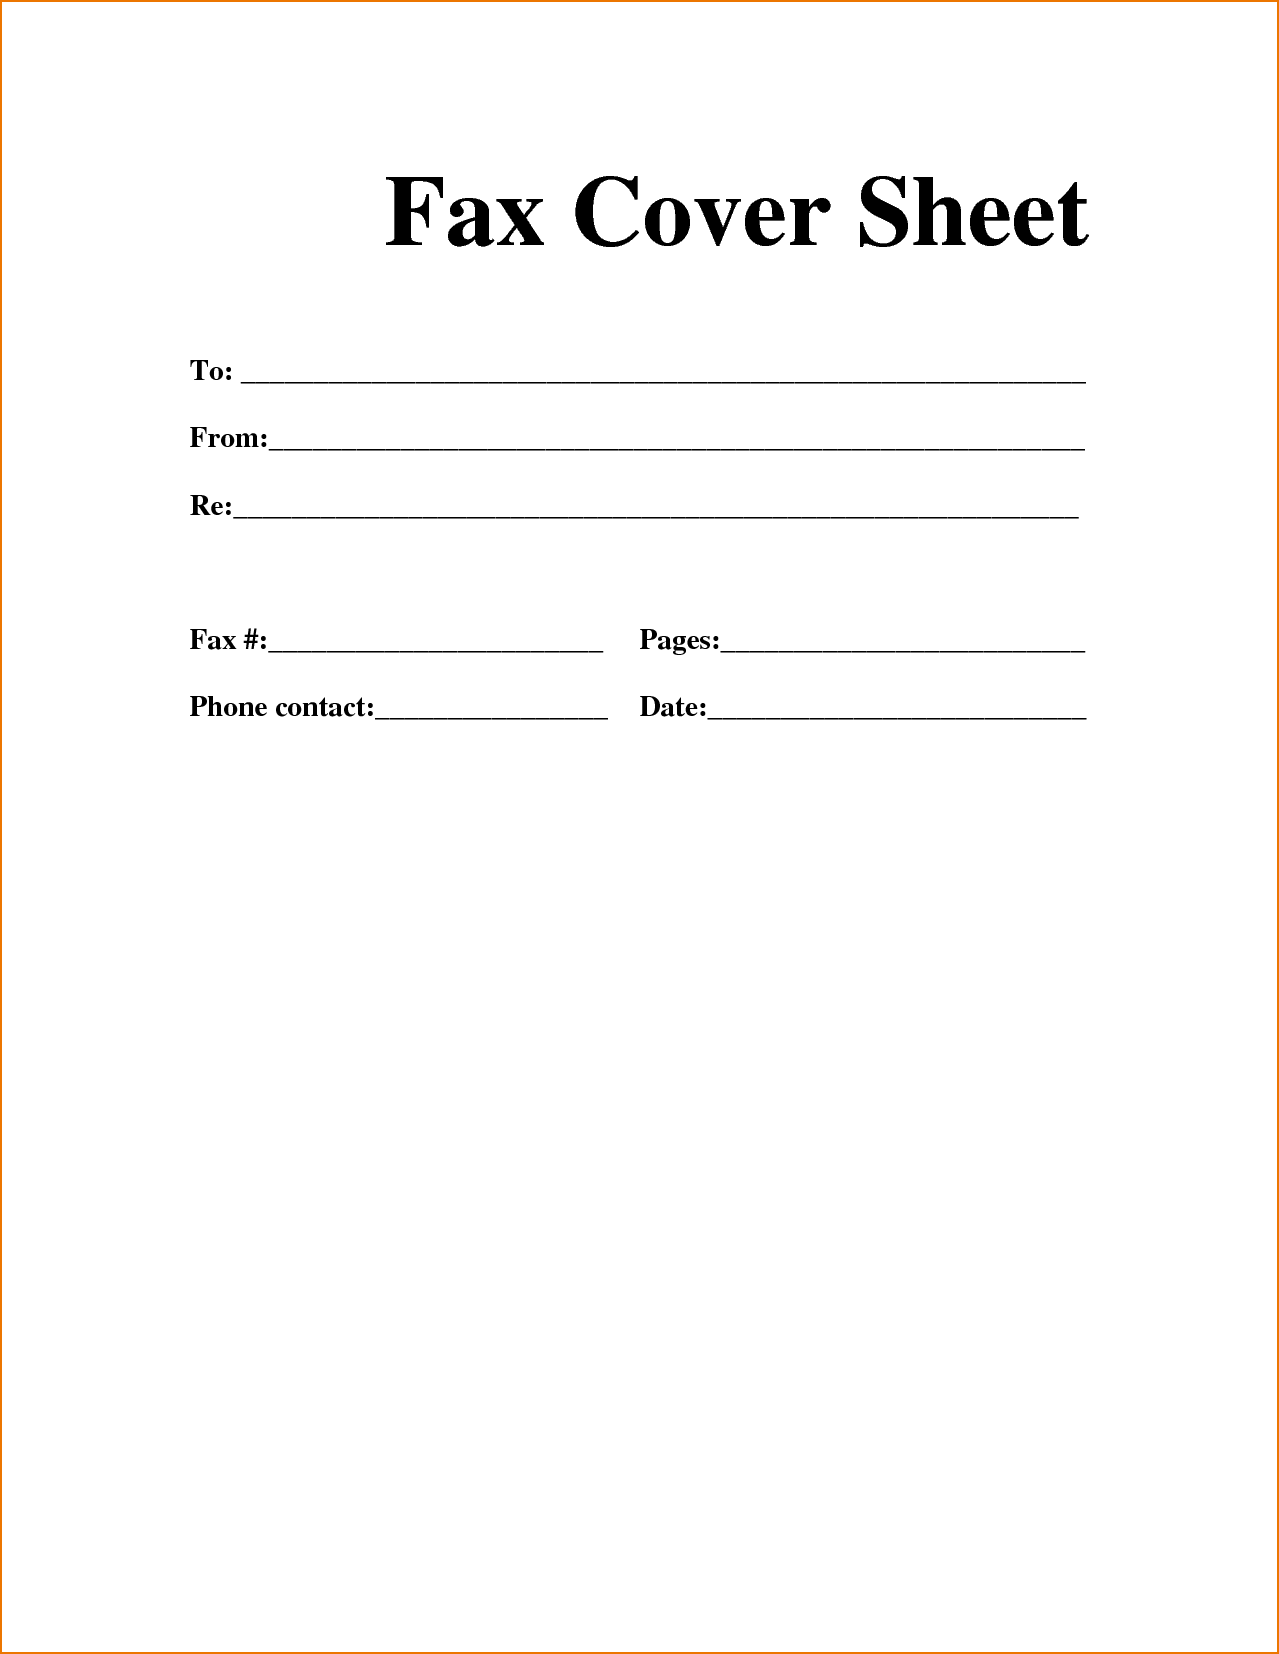 Cover Sheets For Resumes Sample Personal Fax Cover Sheet | Template In 2019 | Cover